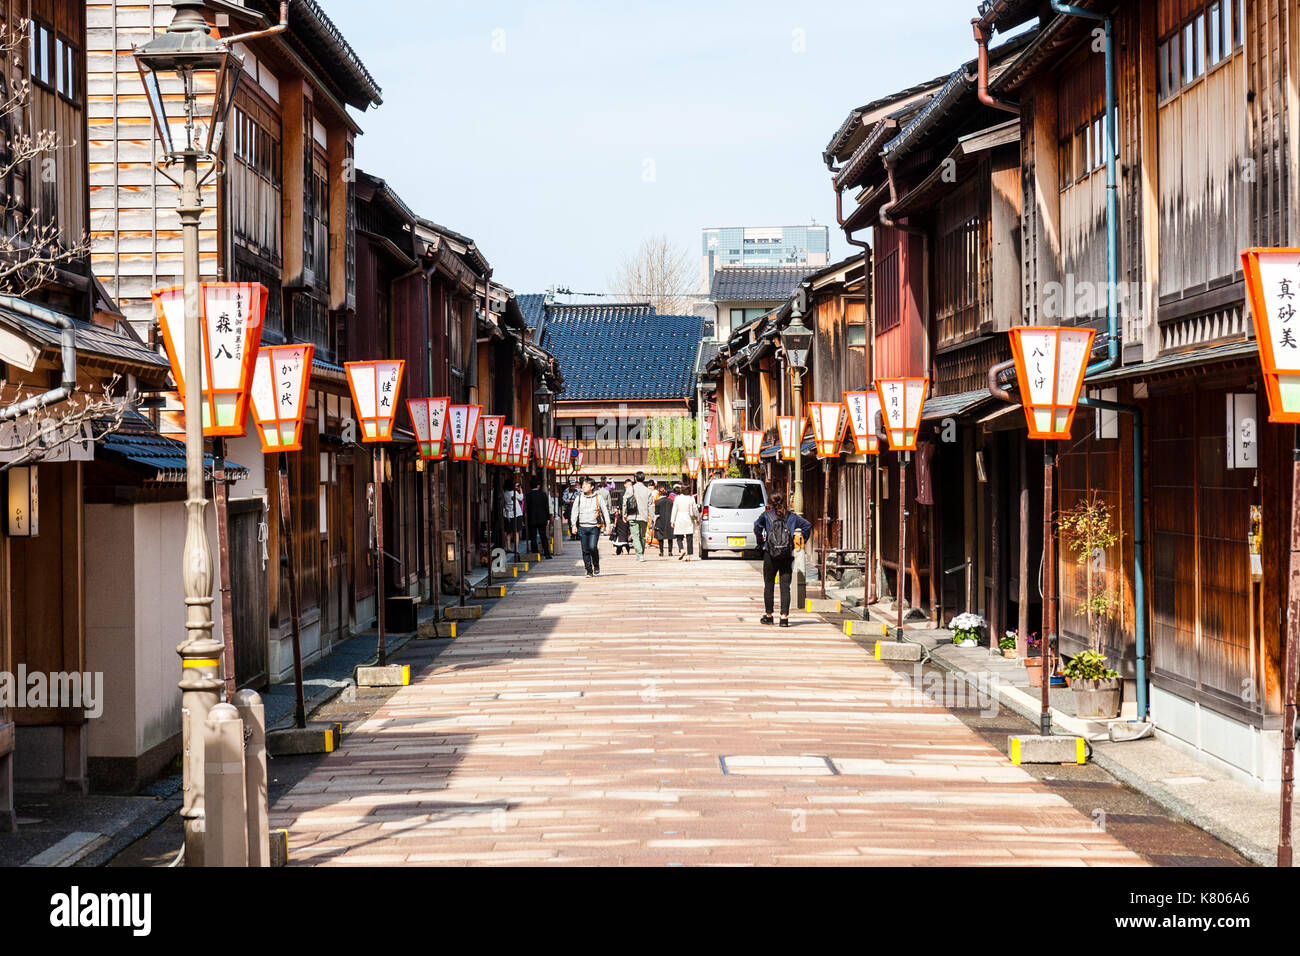 Popular tourist destination, Higashi Chaya district in Kanazawa. Street lined on both sides with Edo period wooden buildings, ryokan, shops and inns. - Stock Image